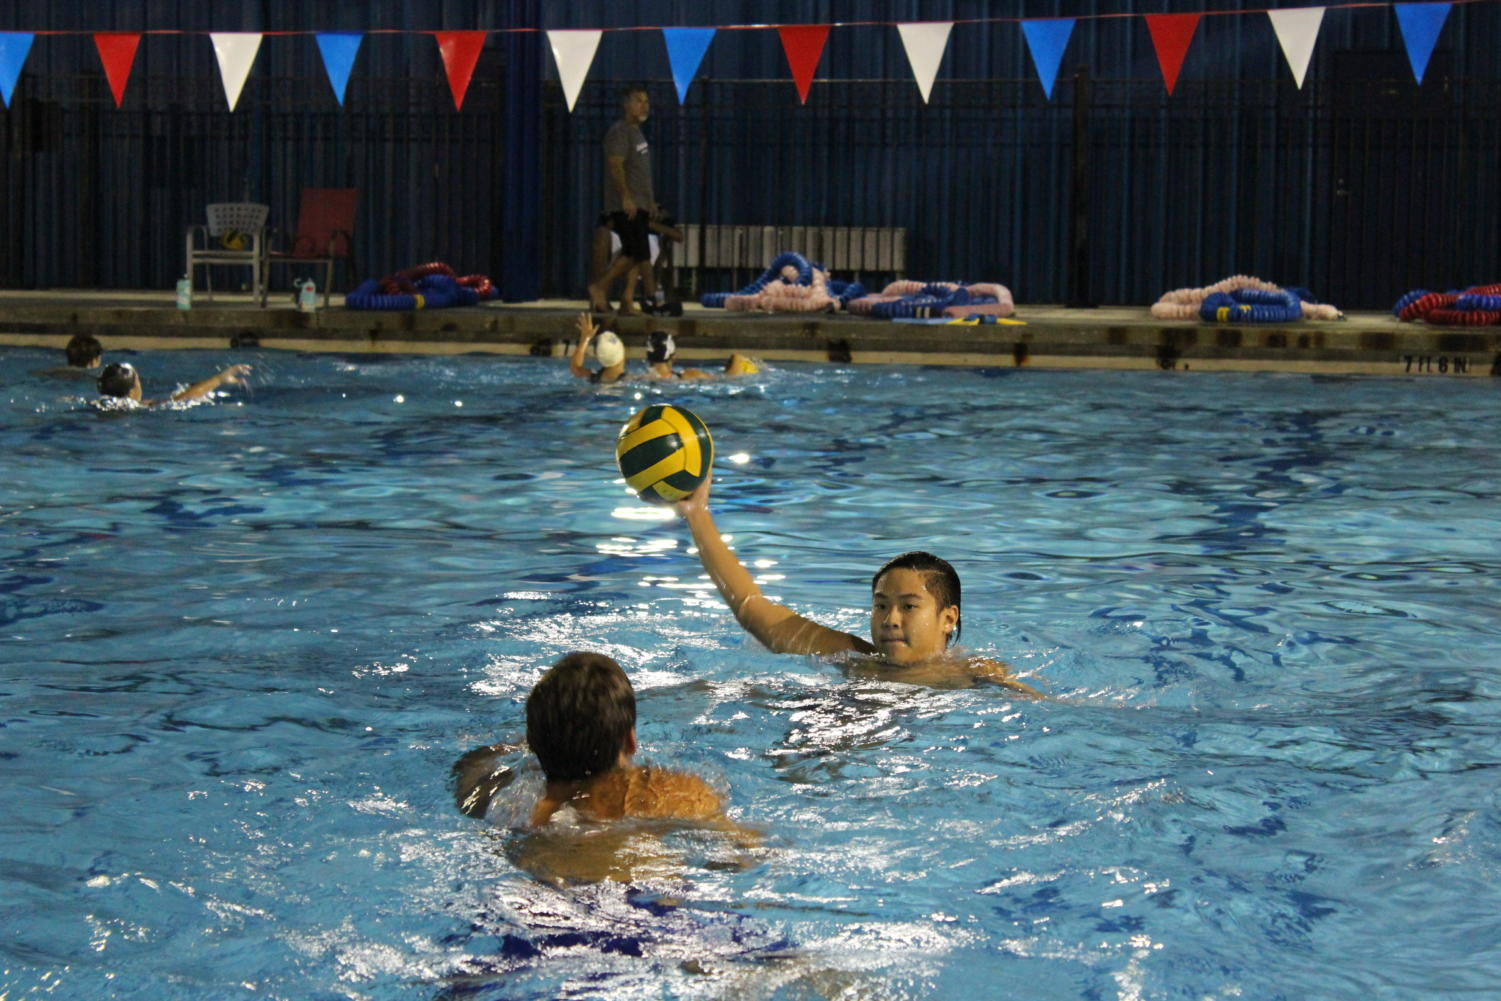 Sophomore+Alexander+Nyugen+is+seen+here+practicing+a+defense+drill.+By+holding+his+hand+up+high+this+drill+emphasizes+both+defense+skills+and+steadiness+for+the+offensive+player.+Due+to+the+fact+that+water+polo+is+a+full+contact+sport+these+drills+often+involve+a+lot+of+pushing+and+splashing.+